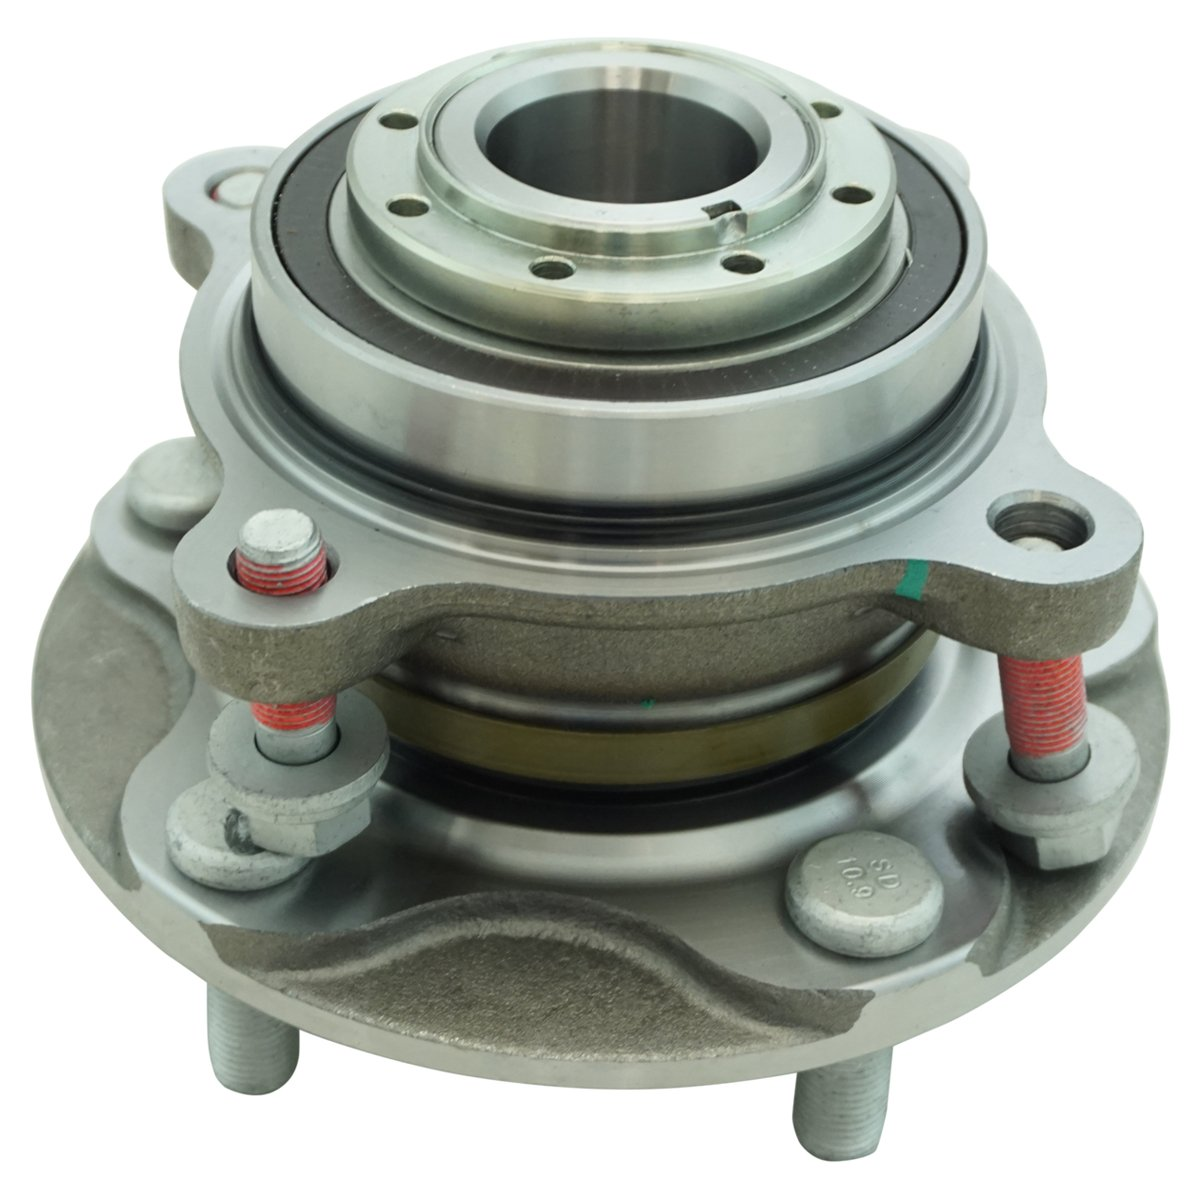 Front Wheel Bearing /& Hub Assembly LH /& RH Pair for Sequoia Tundra 2WD Truck SUV